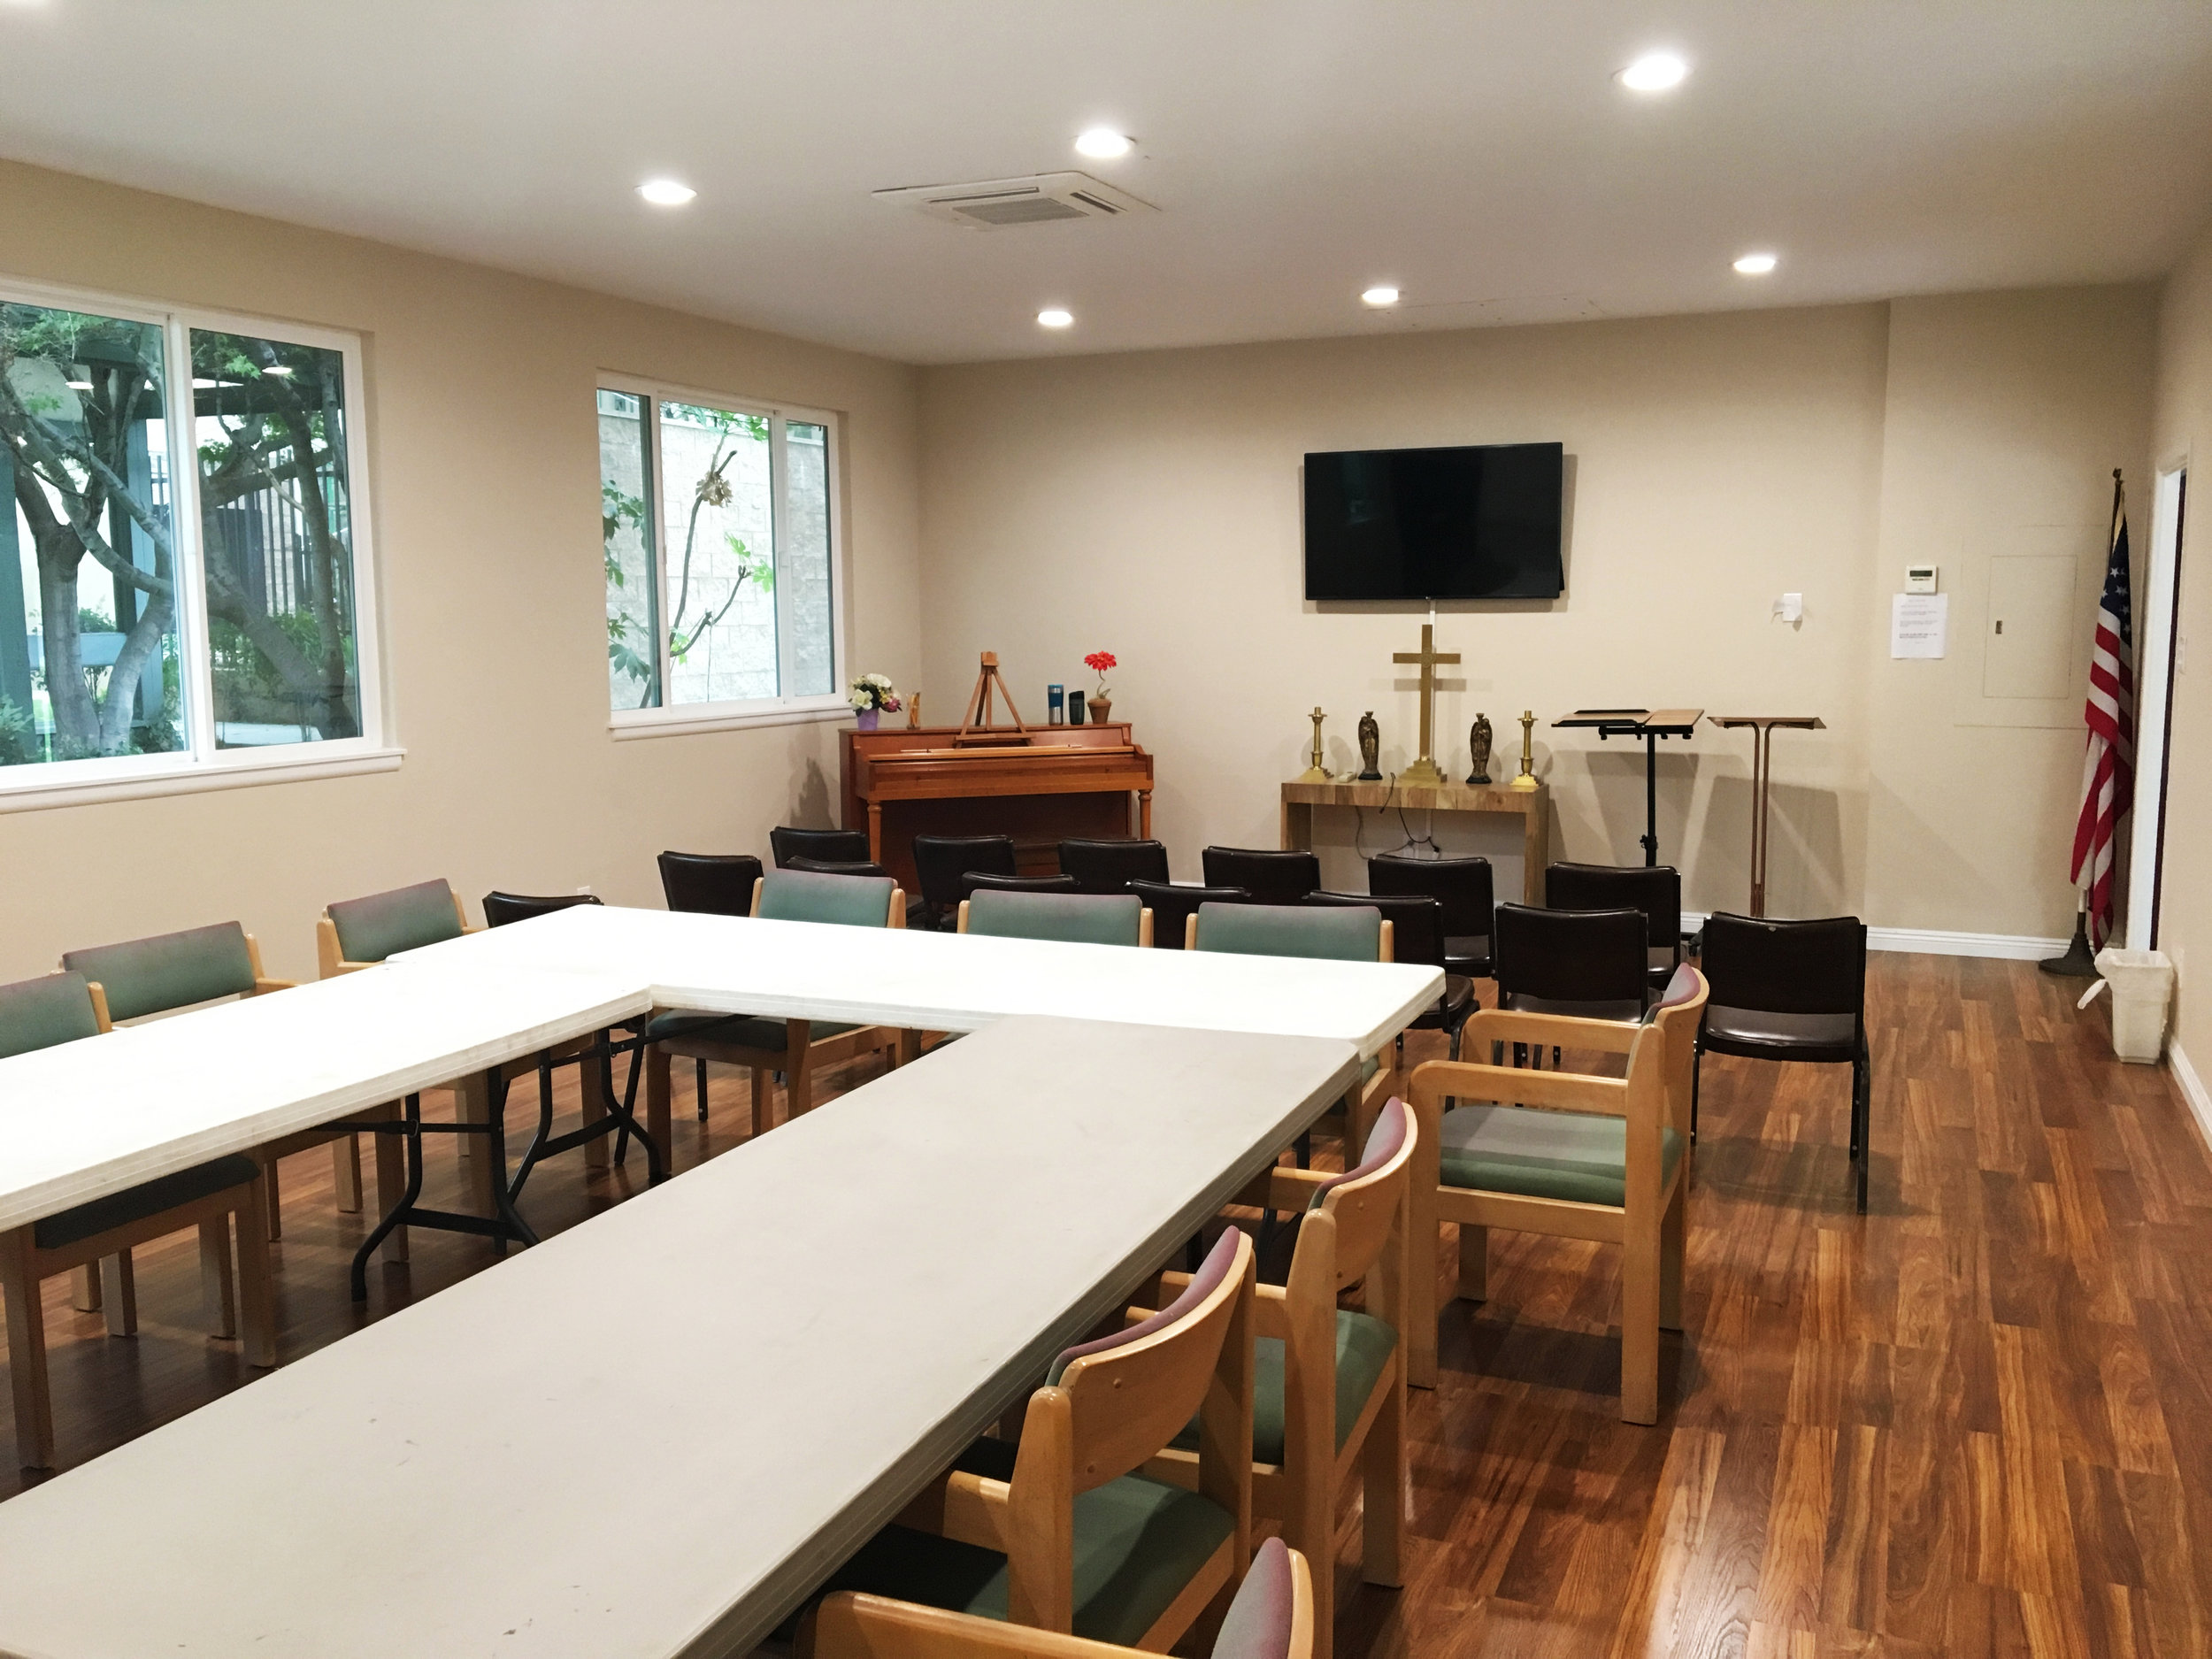 claremont-presbyterian-church-campus-tour-conference-room-2.jpg